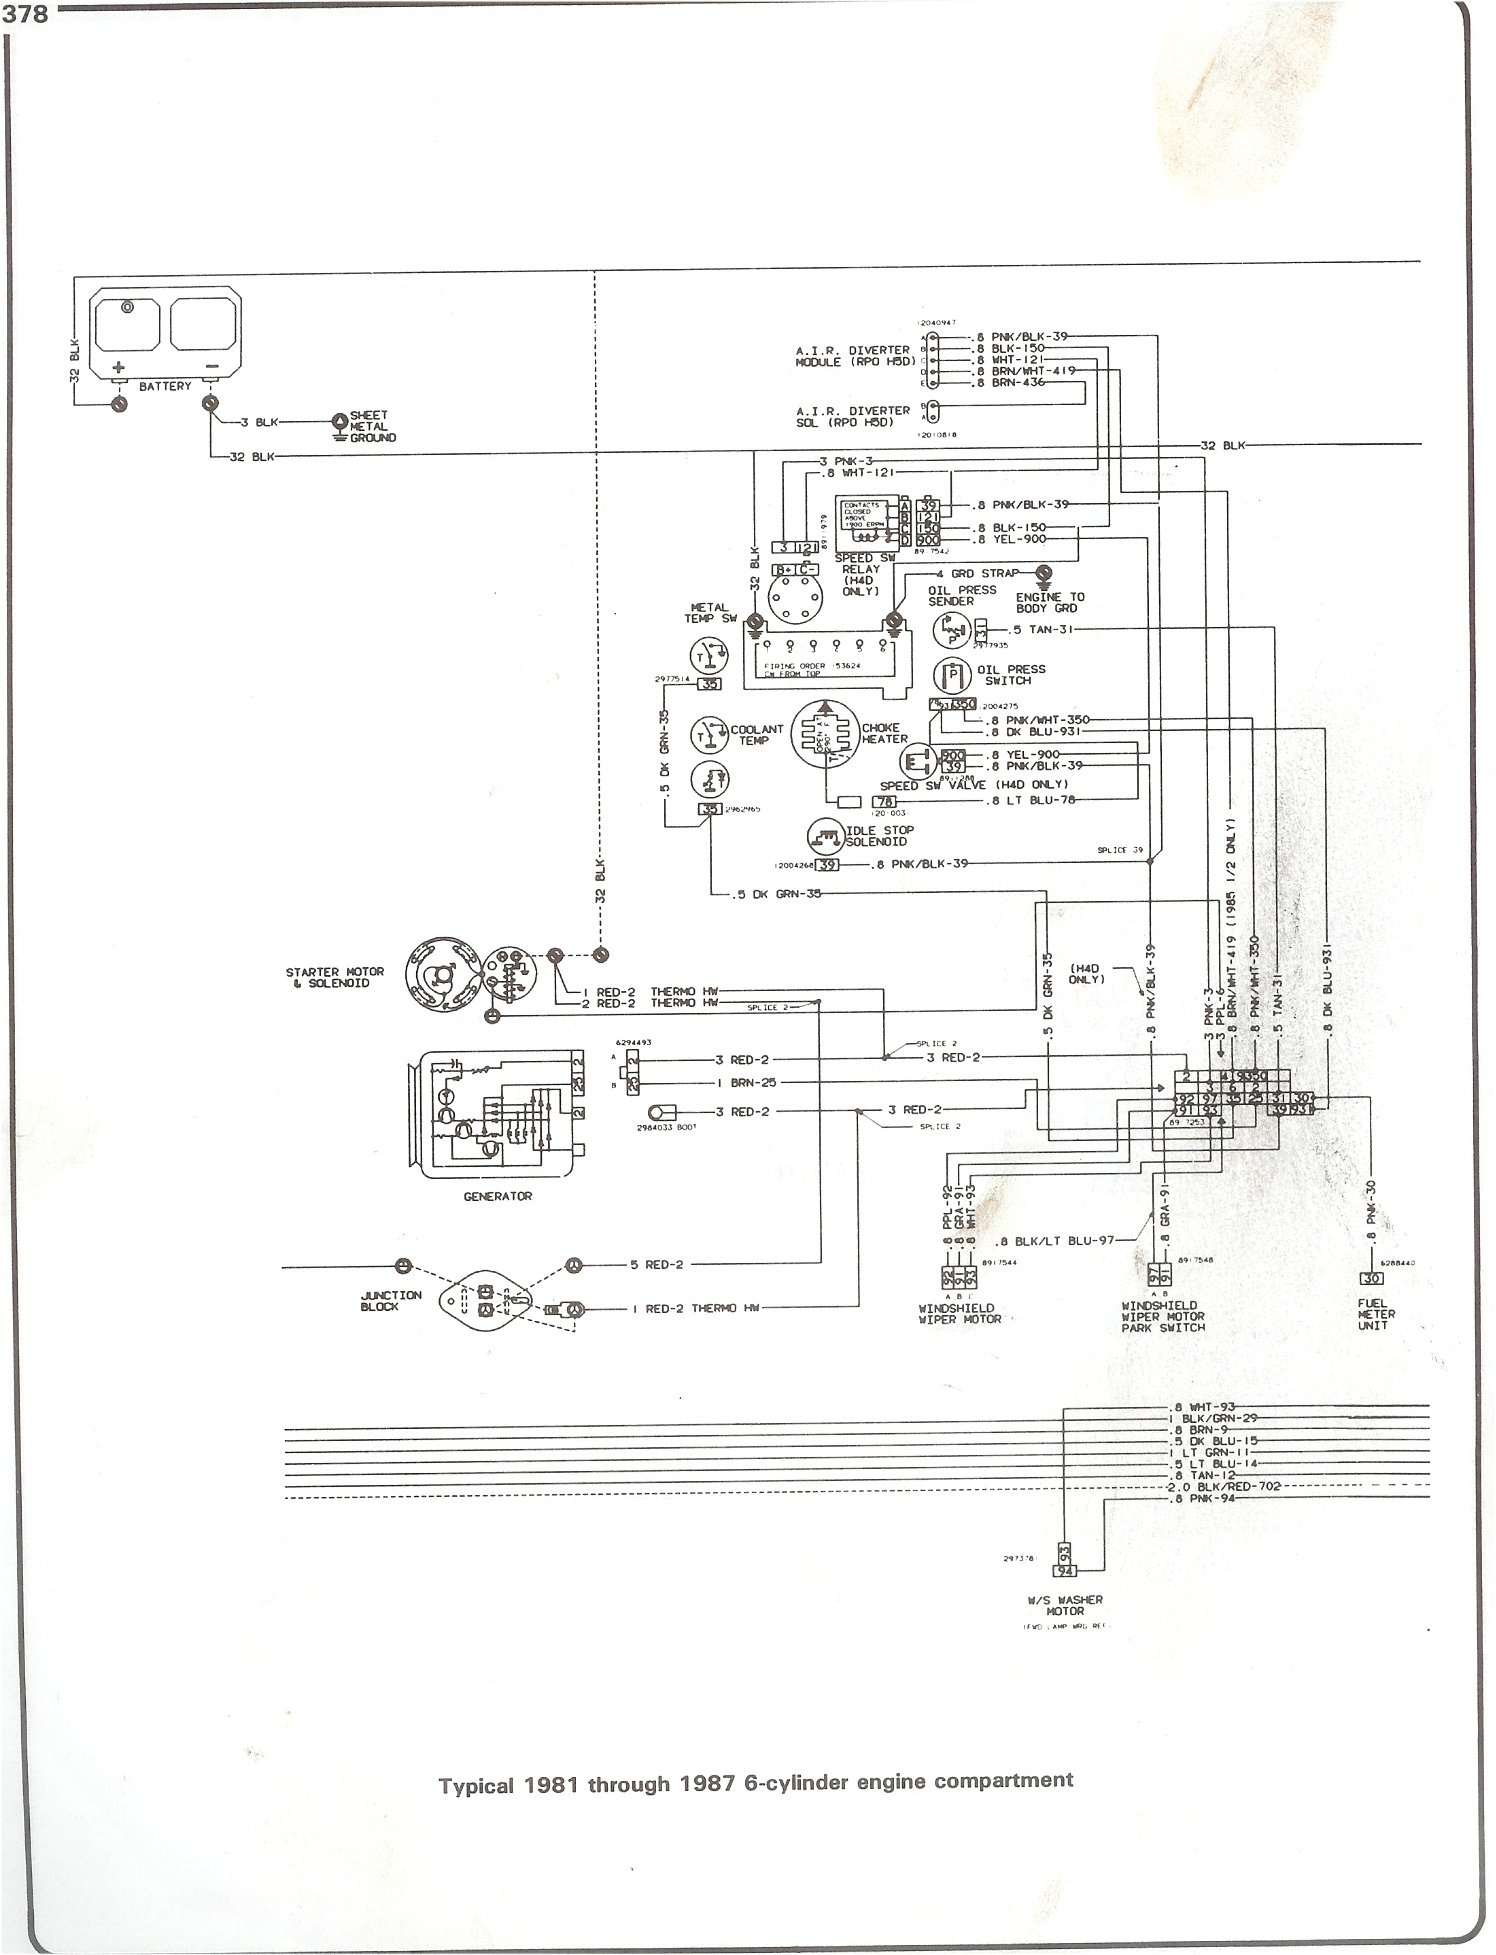 1977 chevy truck ignition wiring diagram just wiring data ignition switch wiring  diagram chevrolet ignition wiring